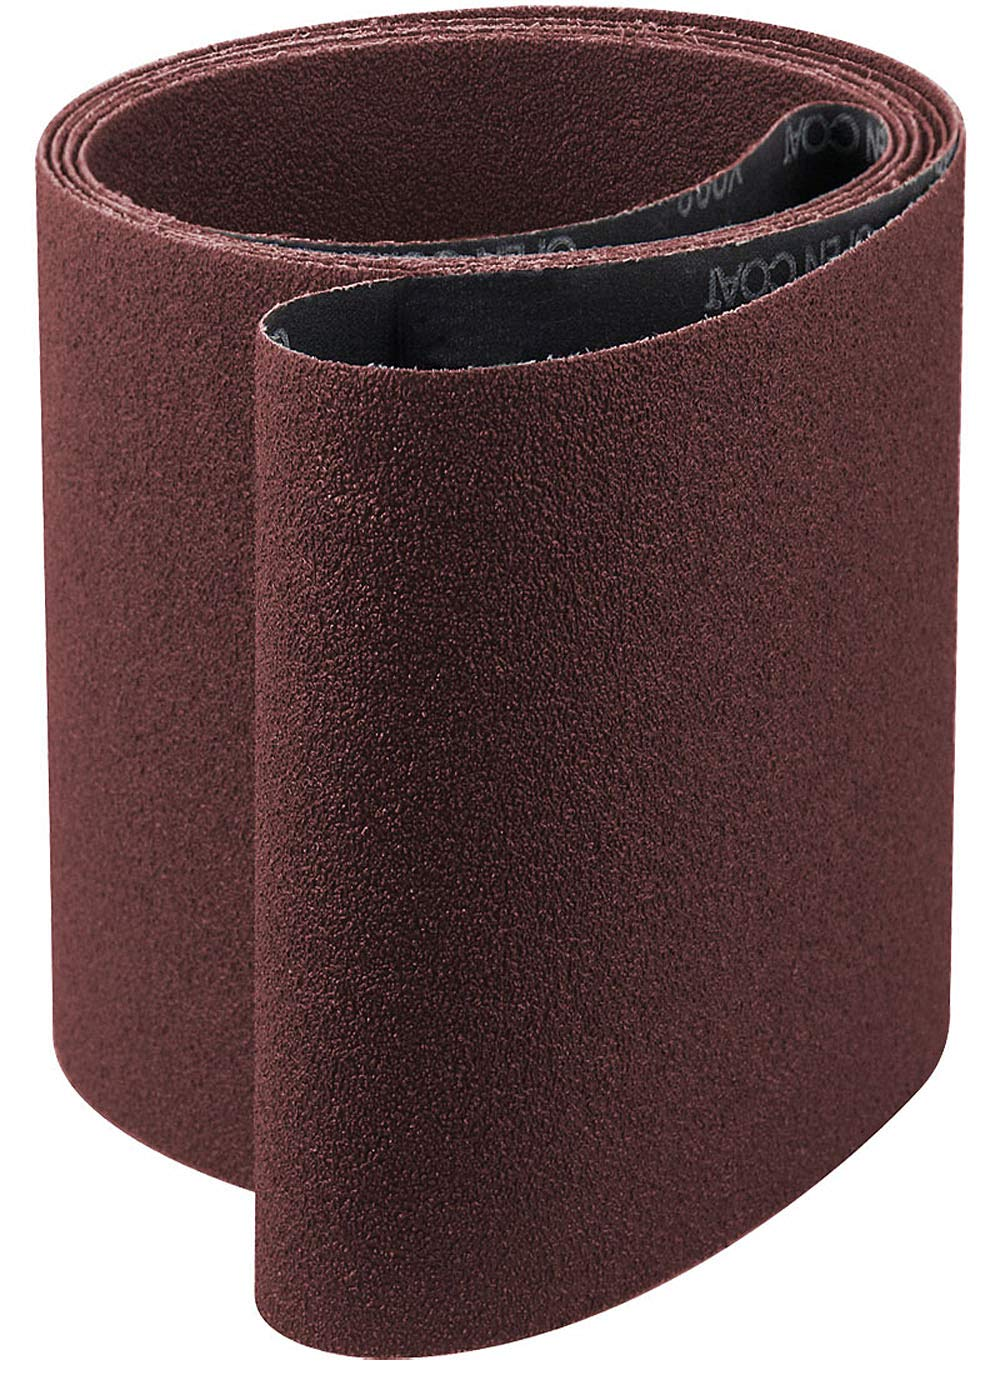 6x108 Free Department store shipping anywhere in the nation Aluminum Oxide 80 Grit Sander x-Weight<br>AH Belt Abrasi